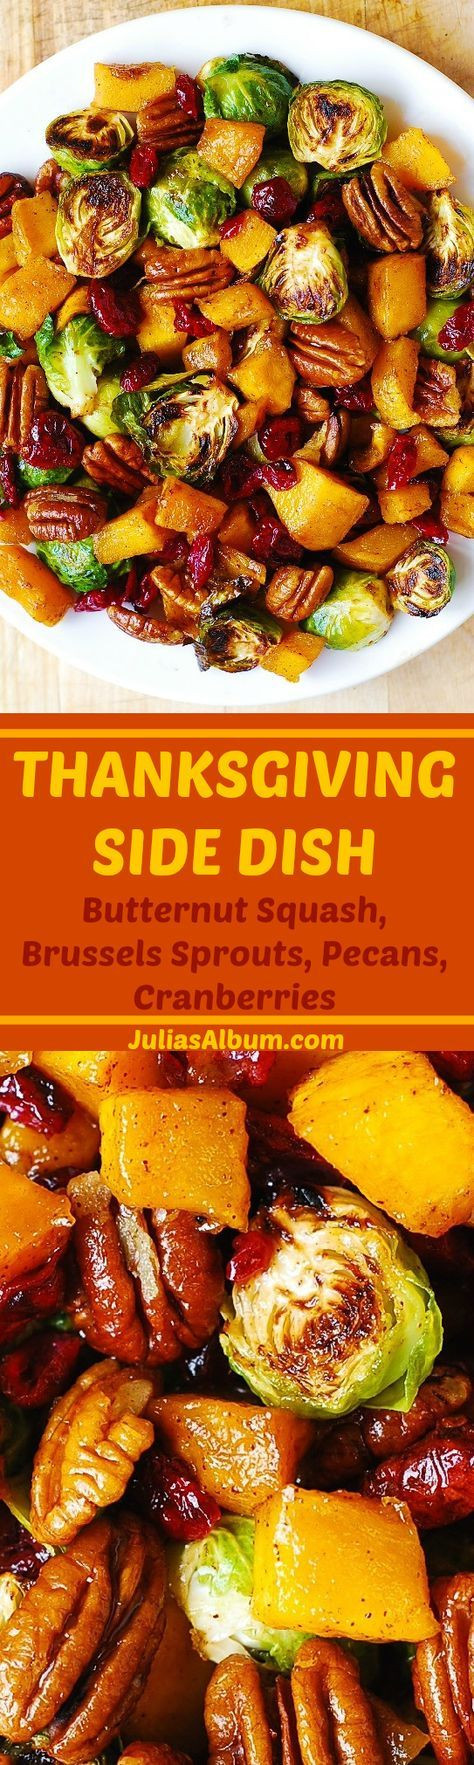 Vegetarian Sides For Thanksgiving  Best 25 Thanksgiving recipes ideas on Pinterest